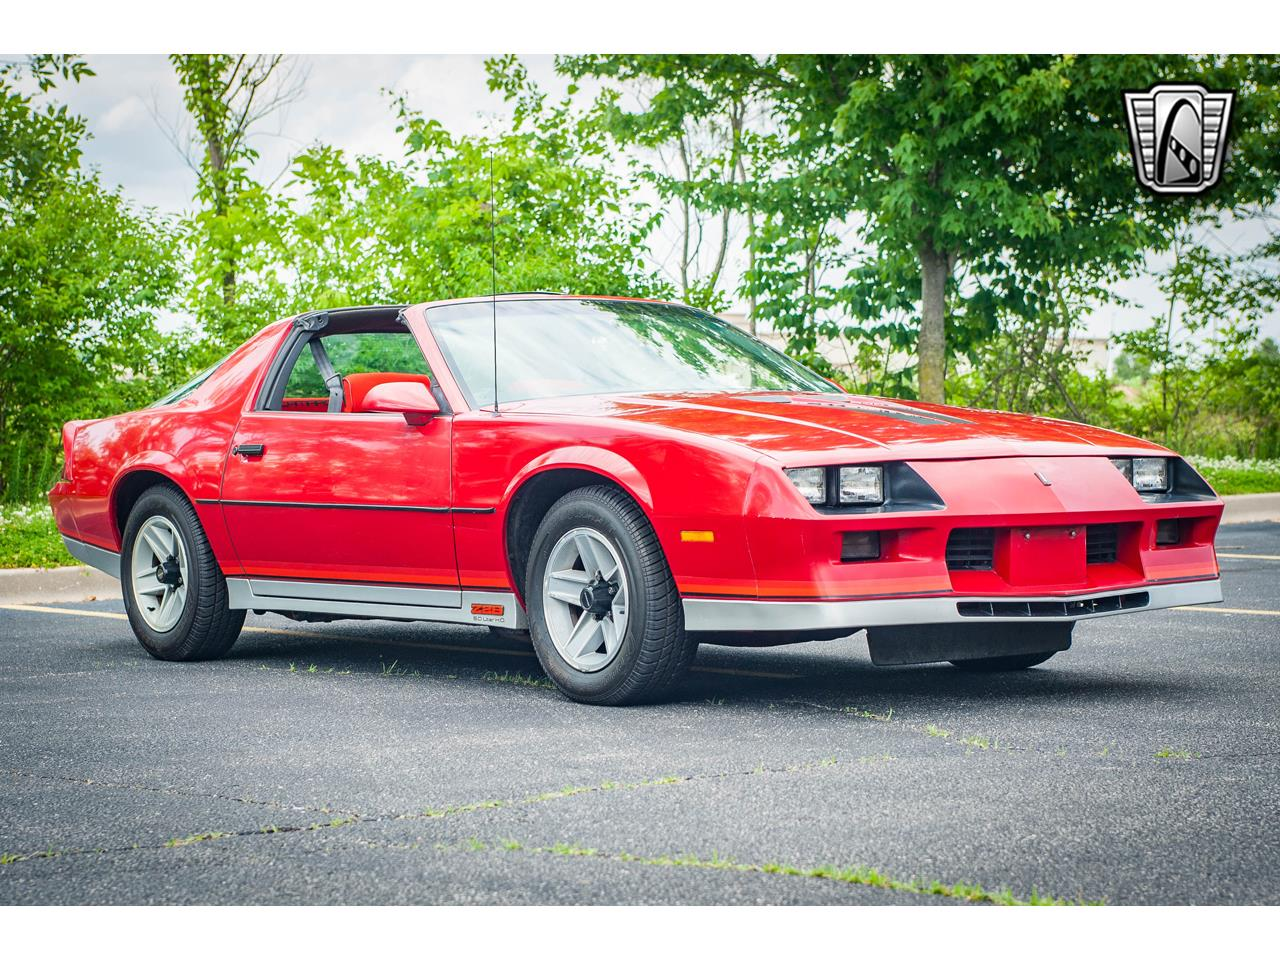 Large Picture of 1984 Chevrolet Camaro located in O'Fallon Illinois Offered by Gateway Classic Cars - St. Louis - QB9Y